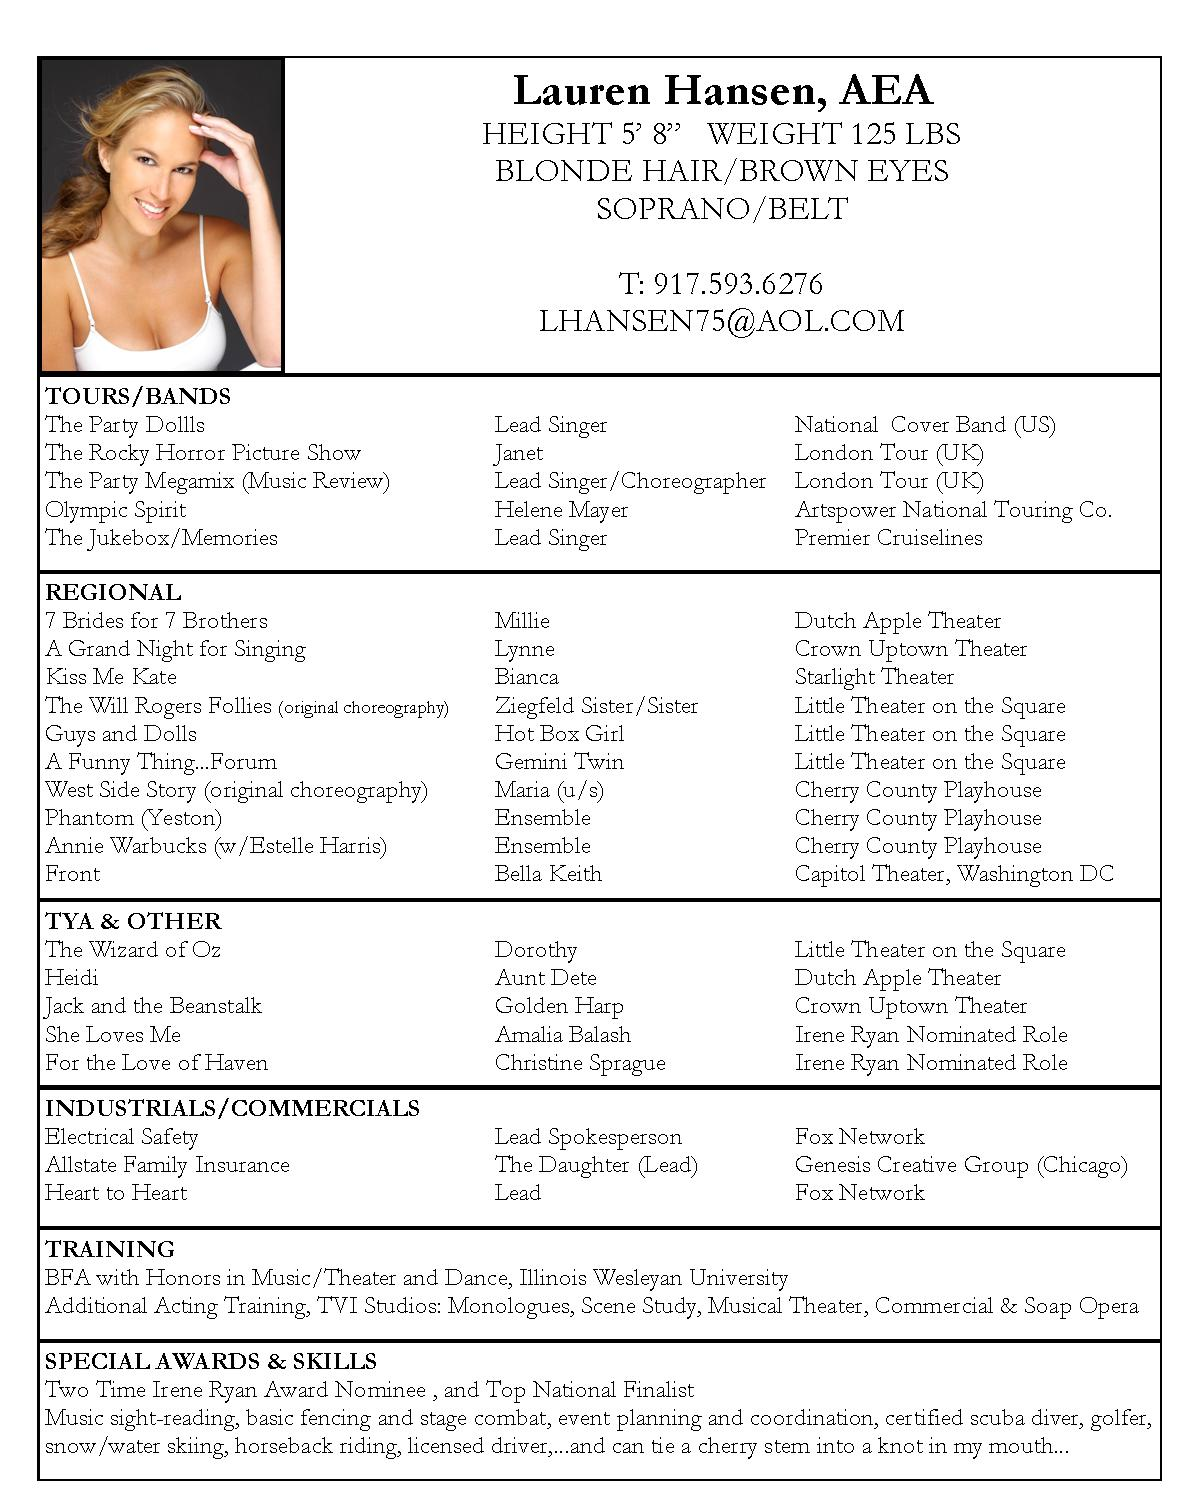 Opposenewapstandardsus  Sweet Resume For Actors Resume For Acting Actors Acting Resume Template  With Fetching Acting Cv  Beginner Acting Resume Example For Inexperienced  With Beauteous Hospice Nurse Resume Also Wharton Resume In Addition Windows Resume Template And Cover Letter For Job Resume As Well As Director Level Resume Additionally References For Resume Format From Kelseymarieco With Opposenewapstandardsus  Fetching Resume For Actors Resume For Acting Actors Acting Resume Template  With Beauteous Acting Cv  Beginner Acting Resume Example For Inexperienced  And Sweet Hospice Nurse Resume Also Wharton Resume In Addition Windows Resume Template From Kelseymarieco